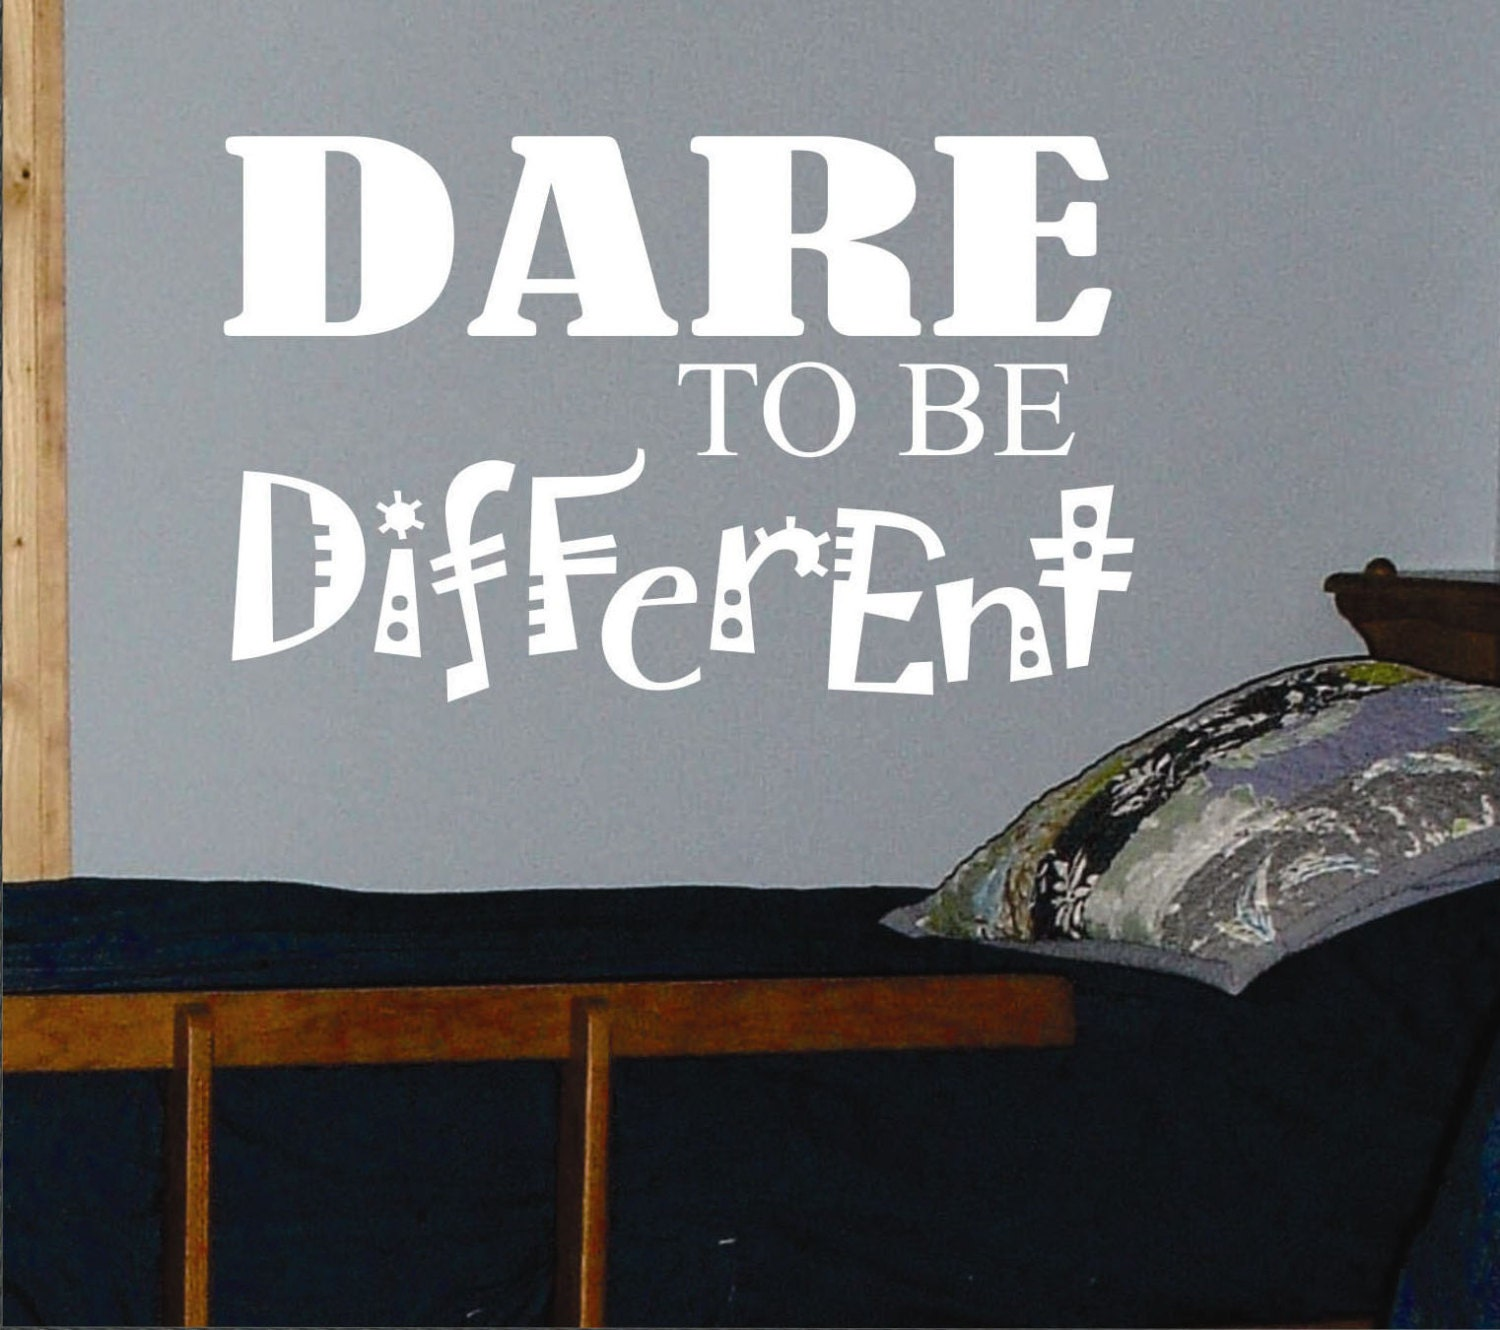 Dare Quotes: Dare To Be Different Vinyl Wall Lettering Vinyl Wall Decals